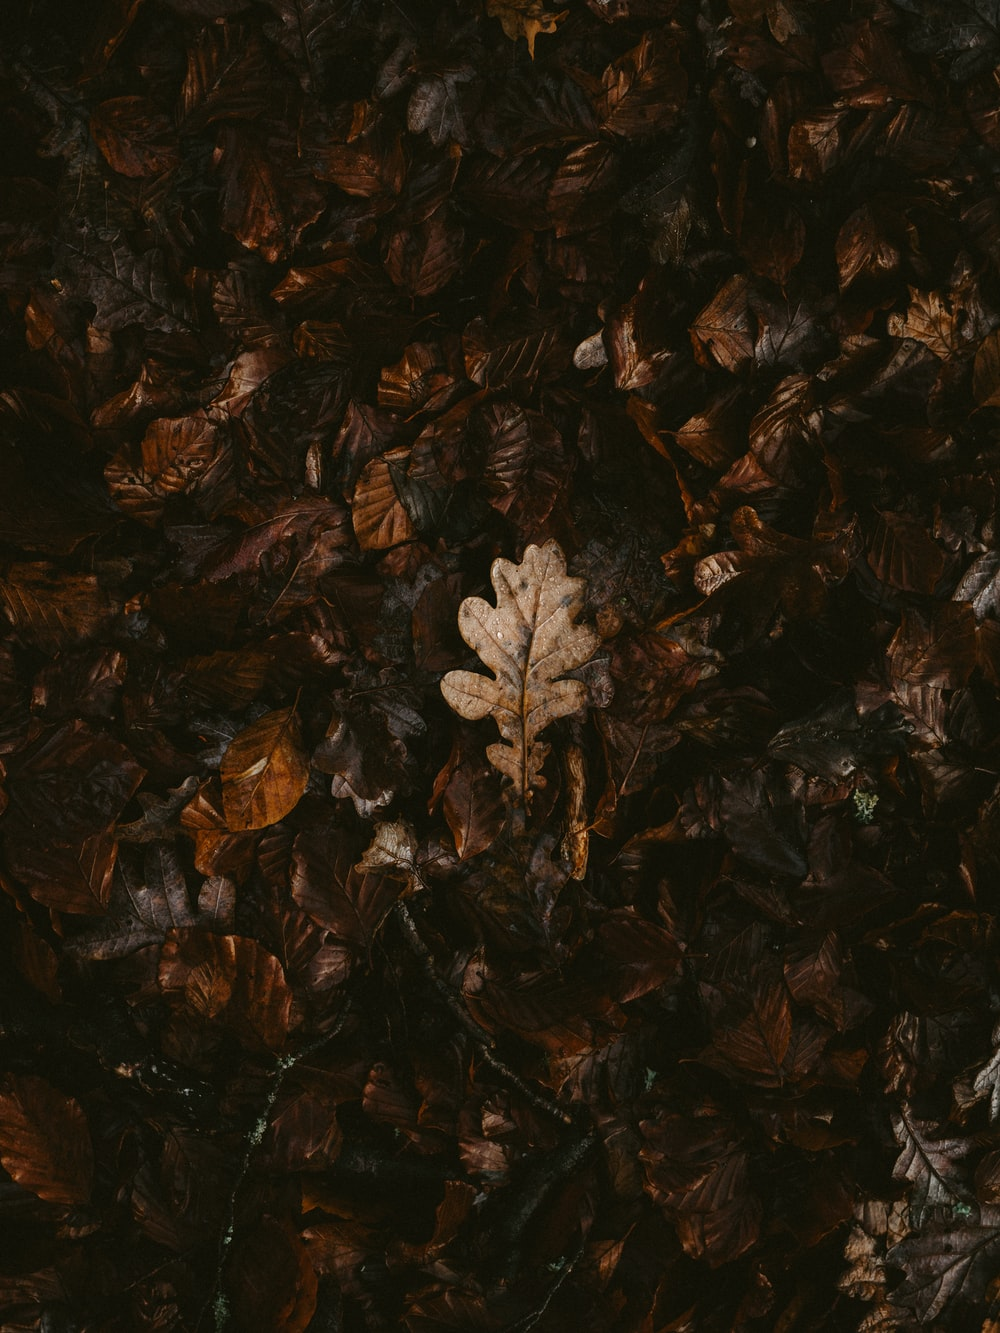 withered leaf on ground